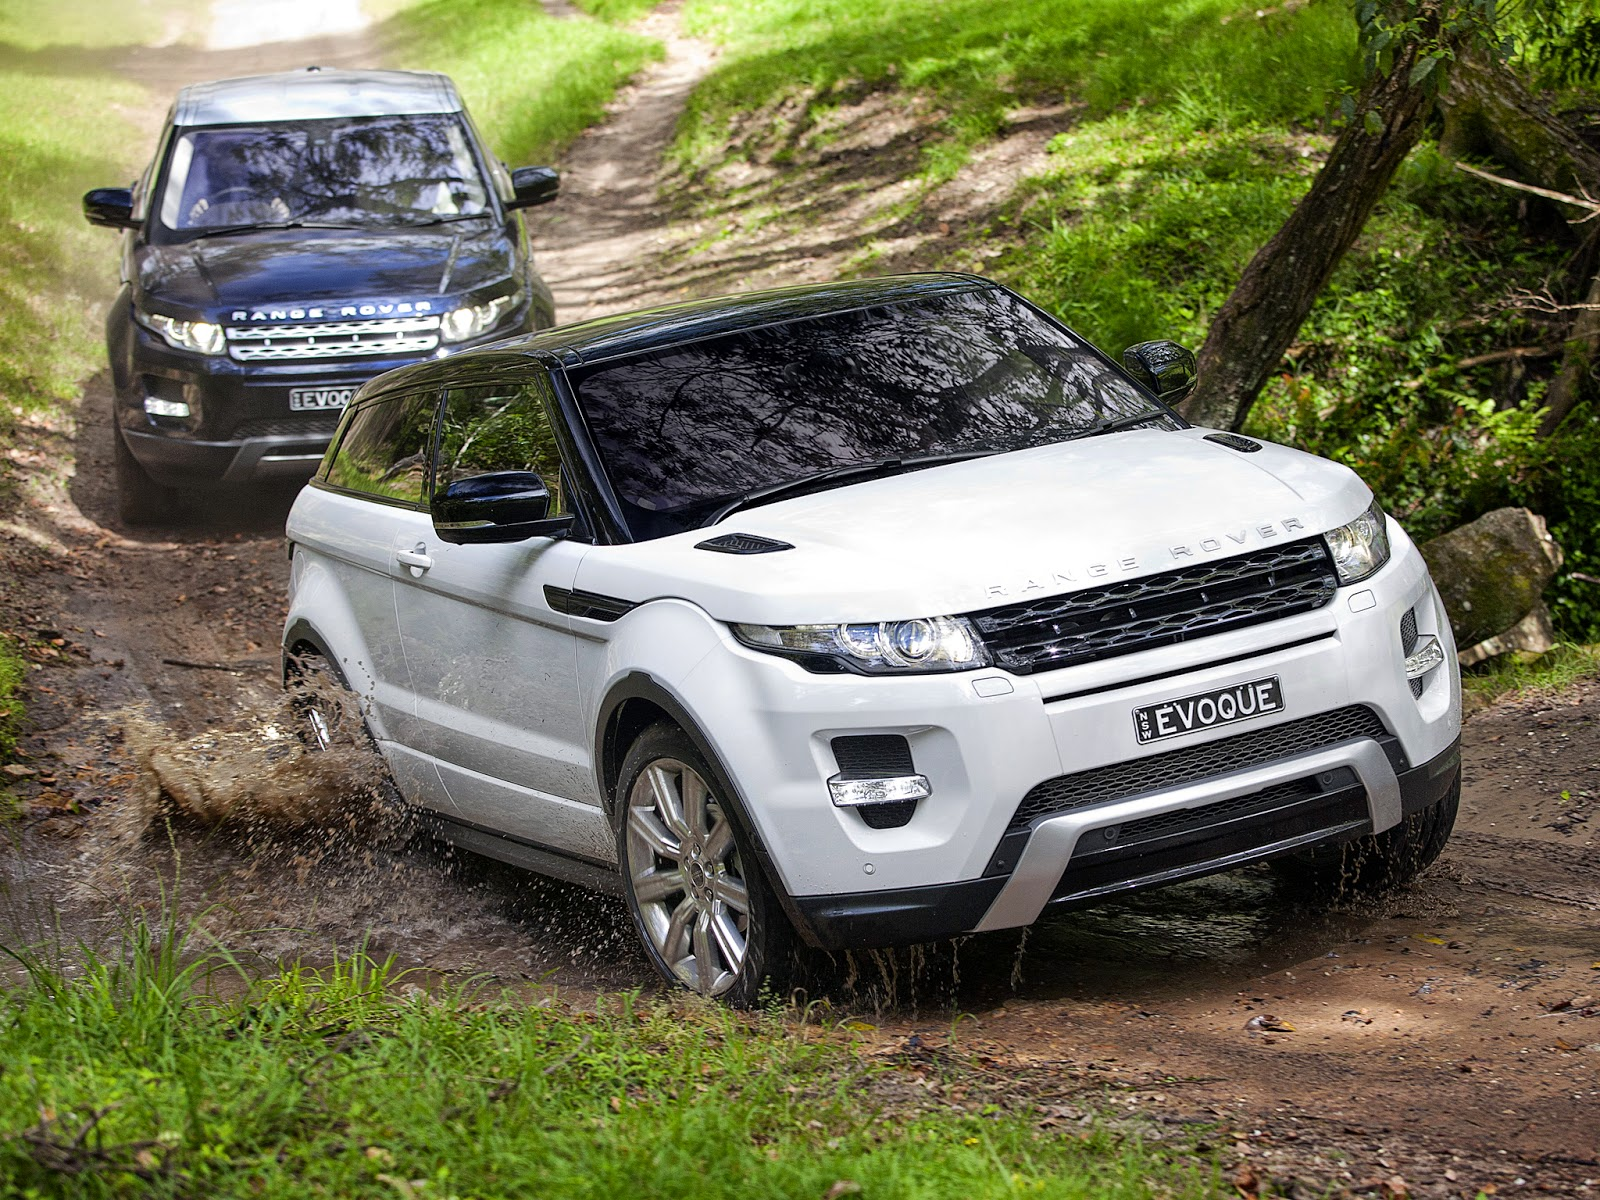 19 range rover evoque the ultimate luxury compact crossover auto review. Black Bedroom Furniture Sets. Home Design Ideas